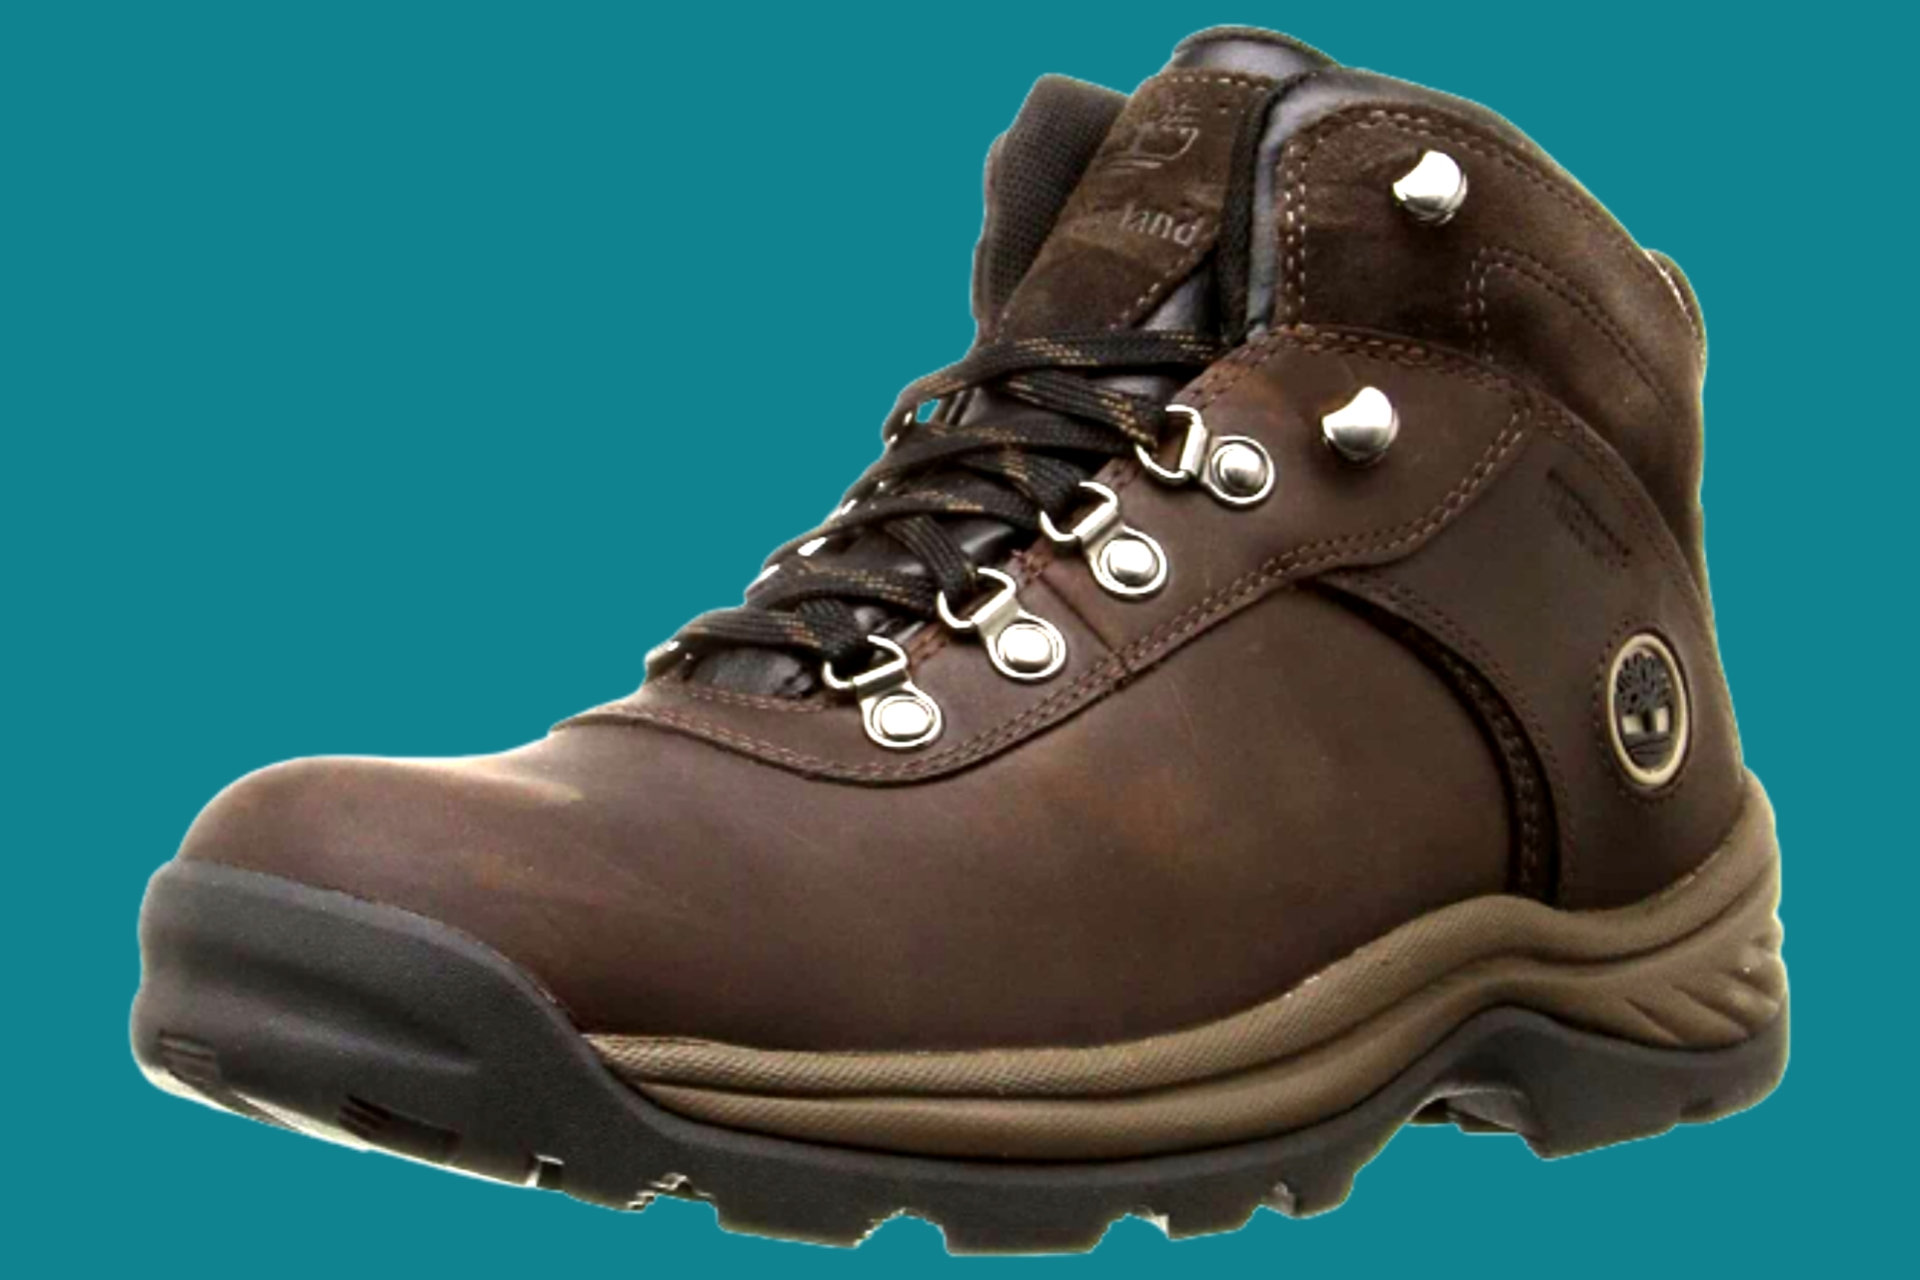 Timberland best hiking boots